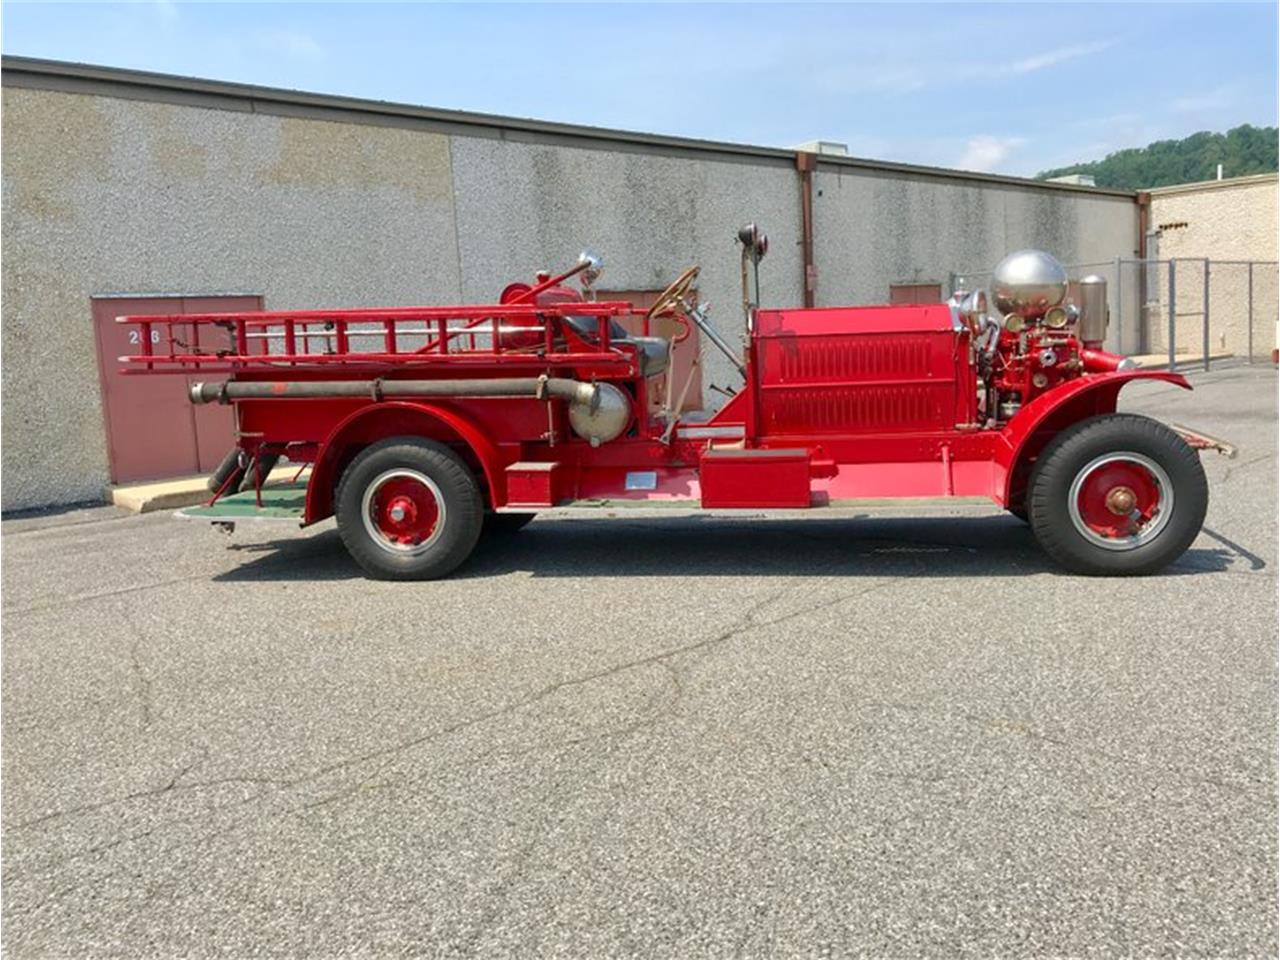 1920 Ahrens-Fox Fire Truck for sale in Morgantown, PA – photo 2